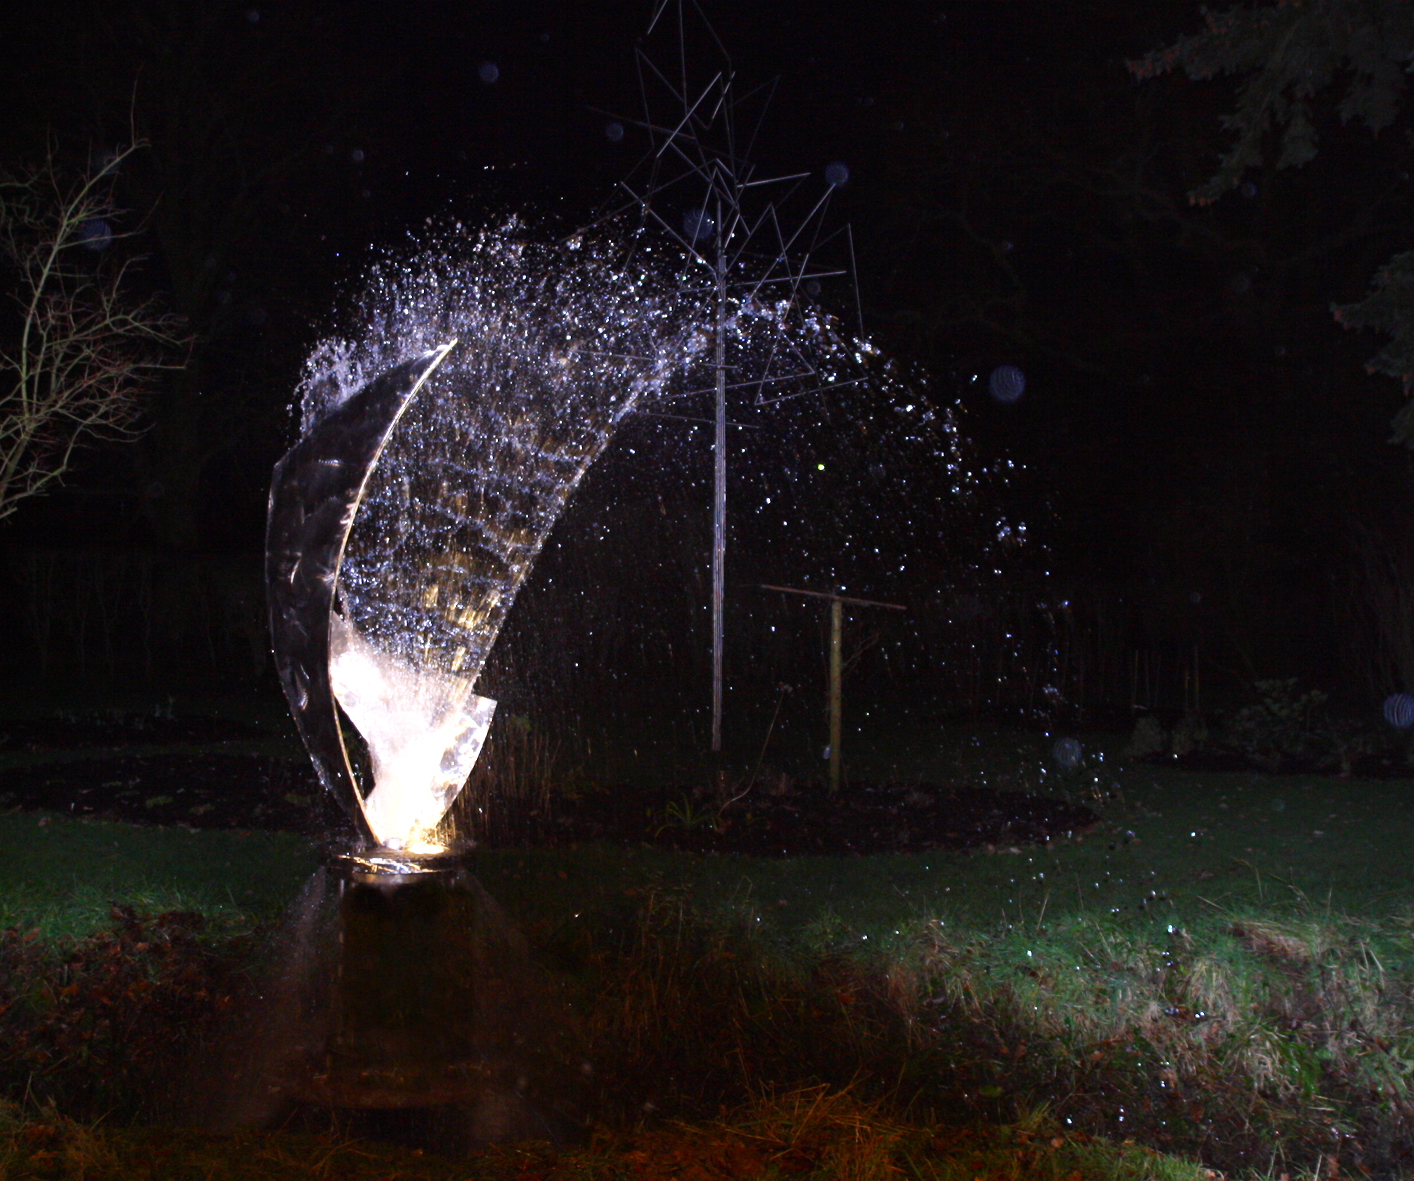 Fountain - stainless steel at night